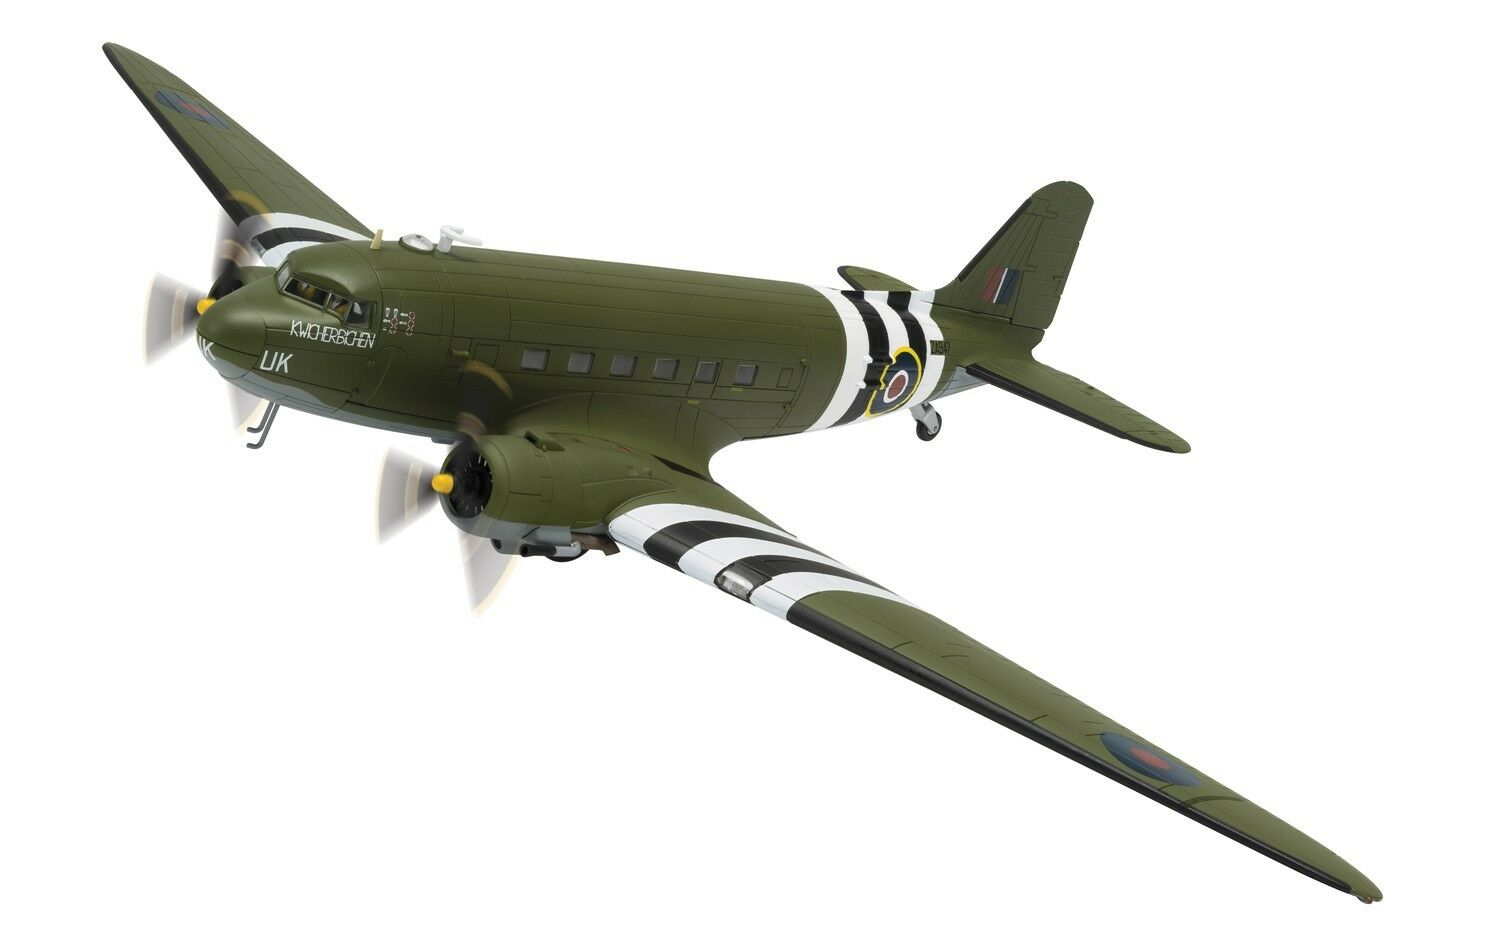 CORGI Douglas C-47 Dakota, 'KWICHERBICHEN' battle of Britain MemorialAA38208